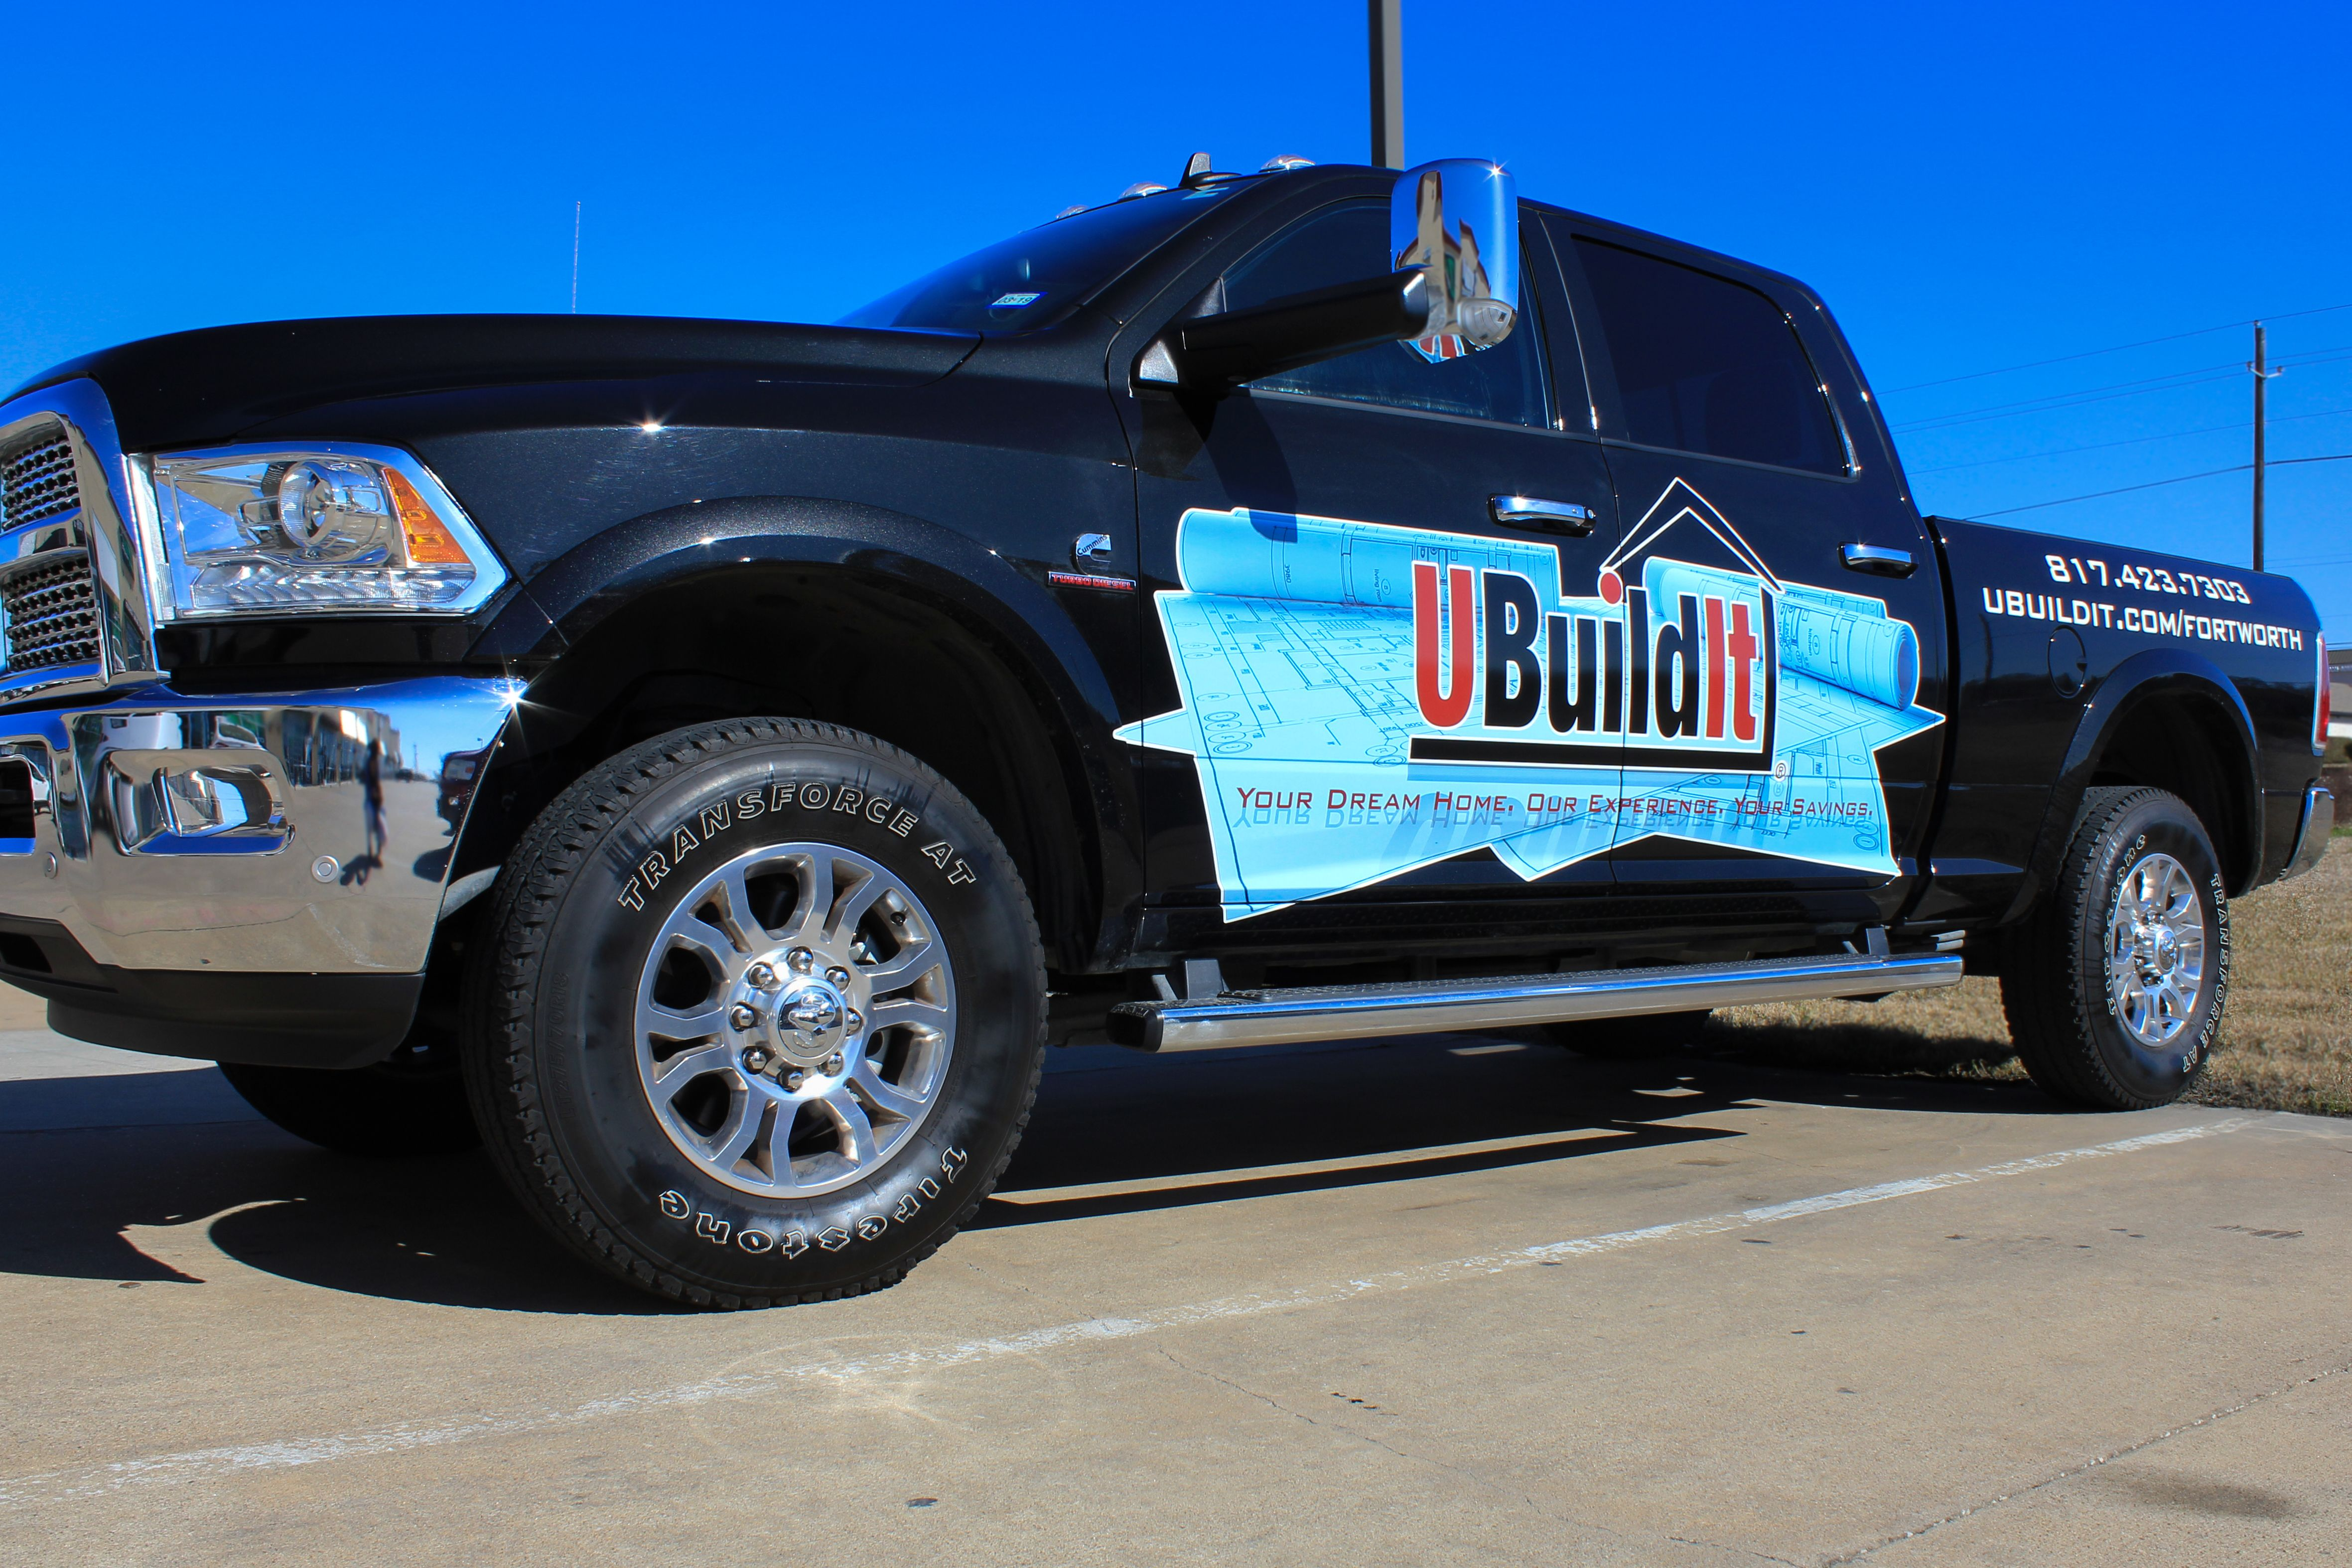 Truck Advertising For Home Builders Custom Home Building Or Home